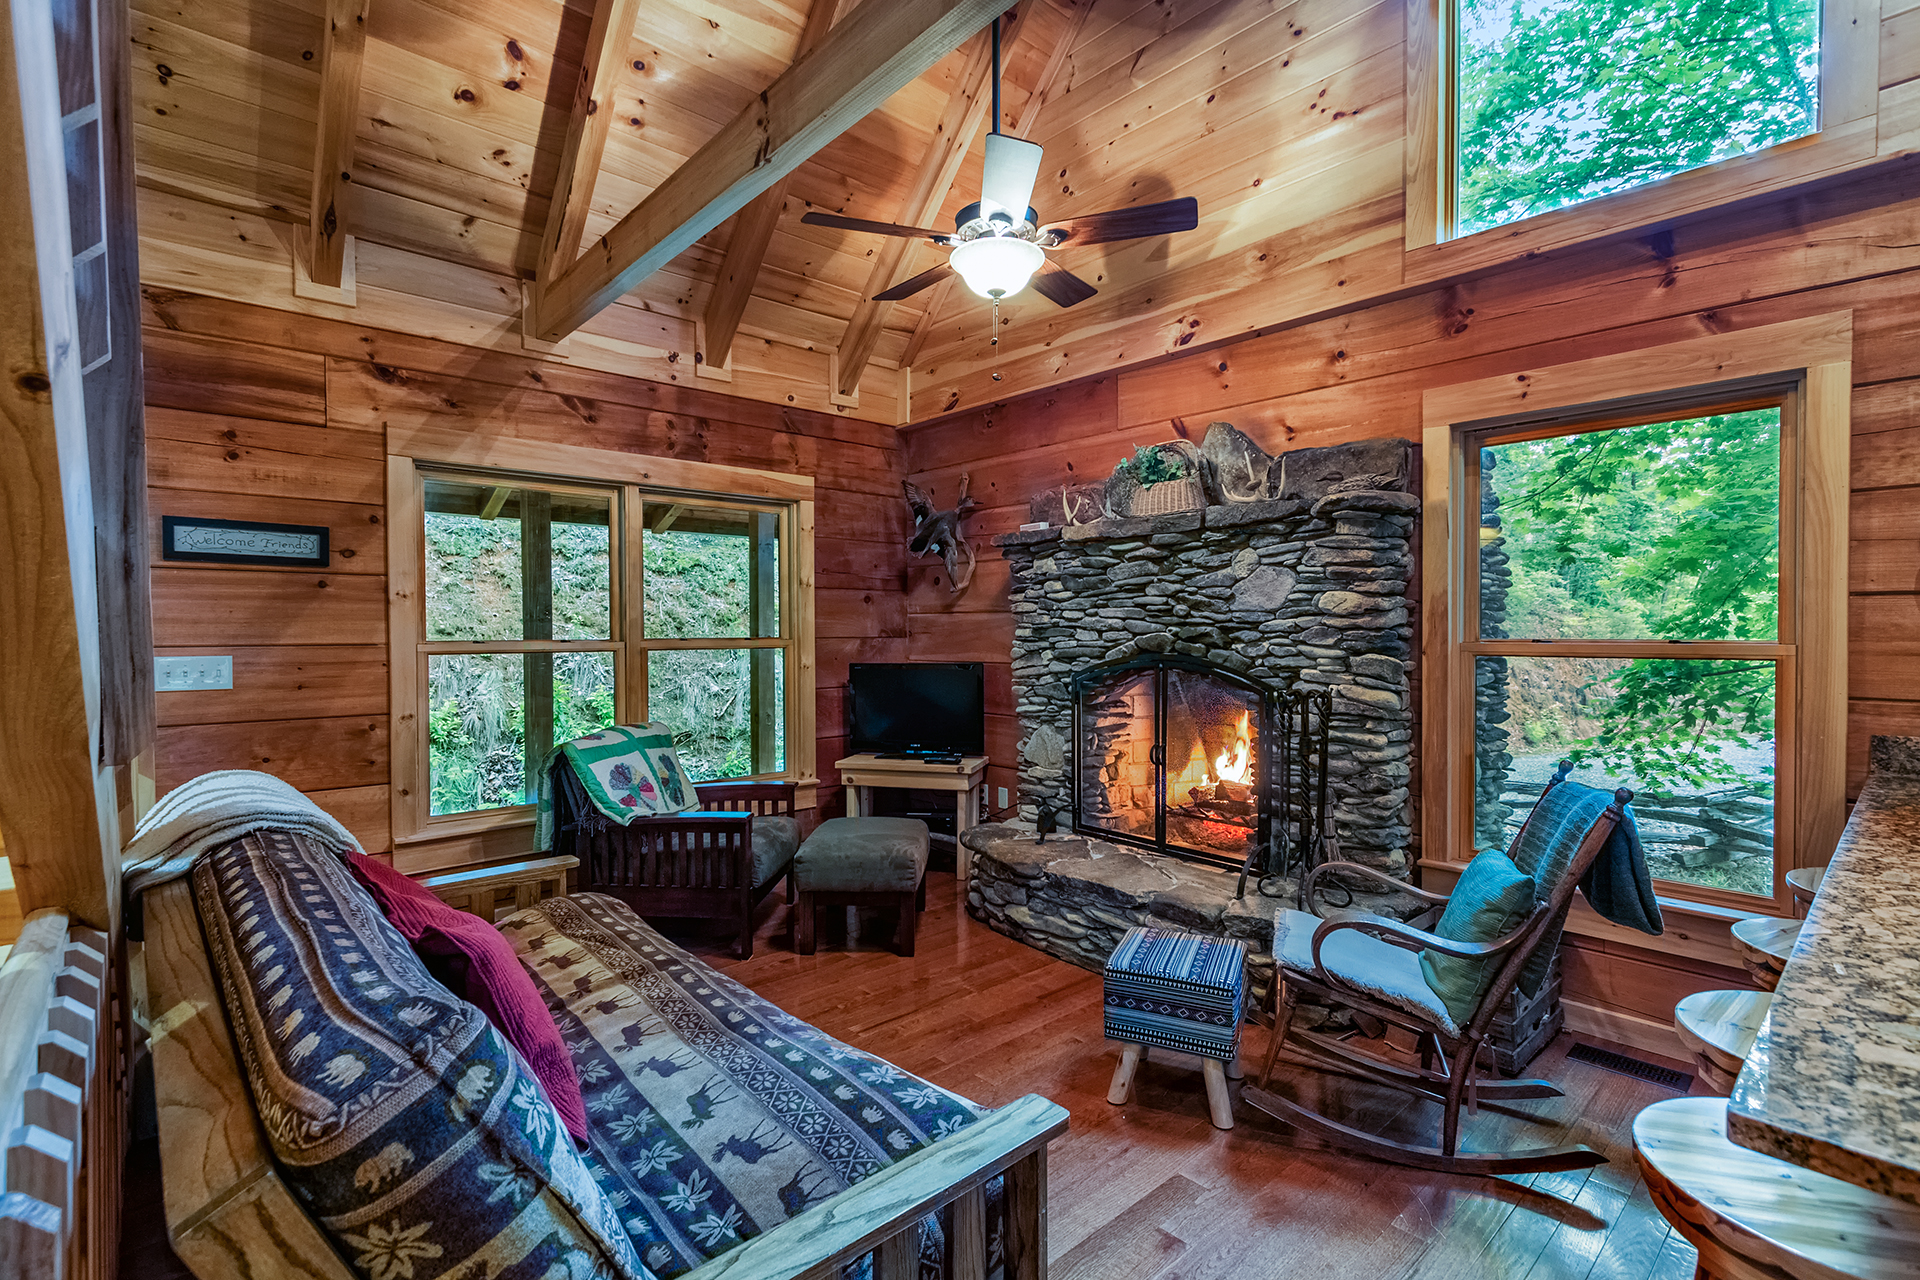 Chimney Rock Log Cabin Bryson City Nc 2 Bedroom Info By